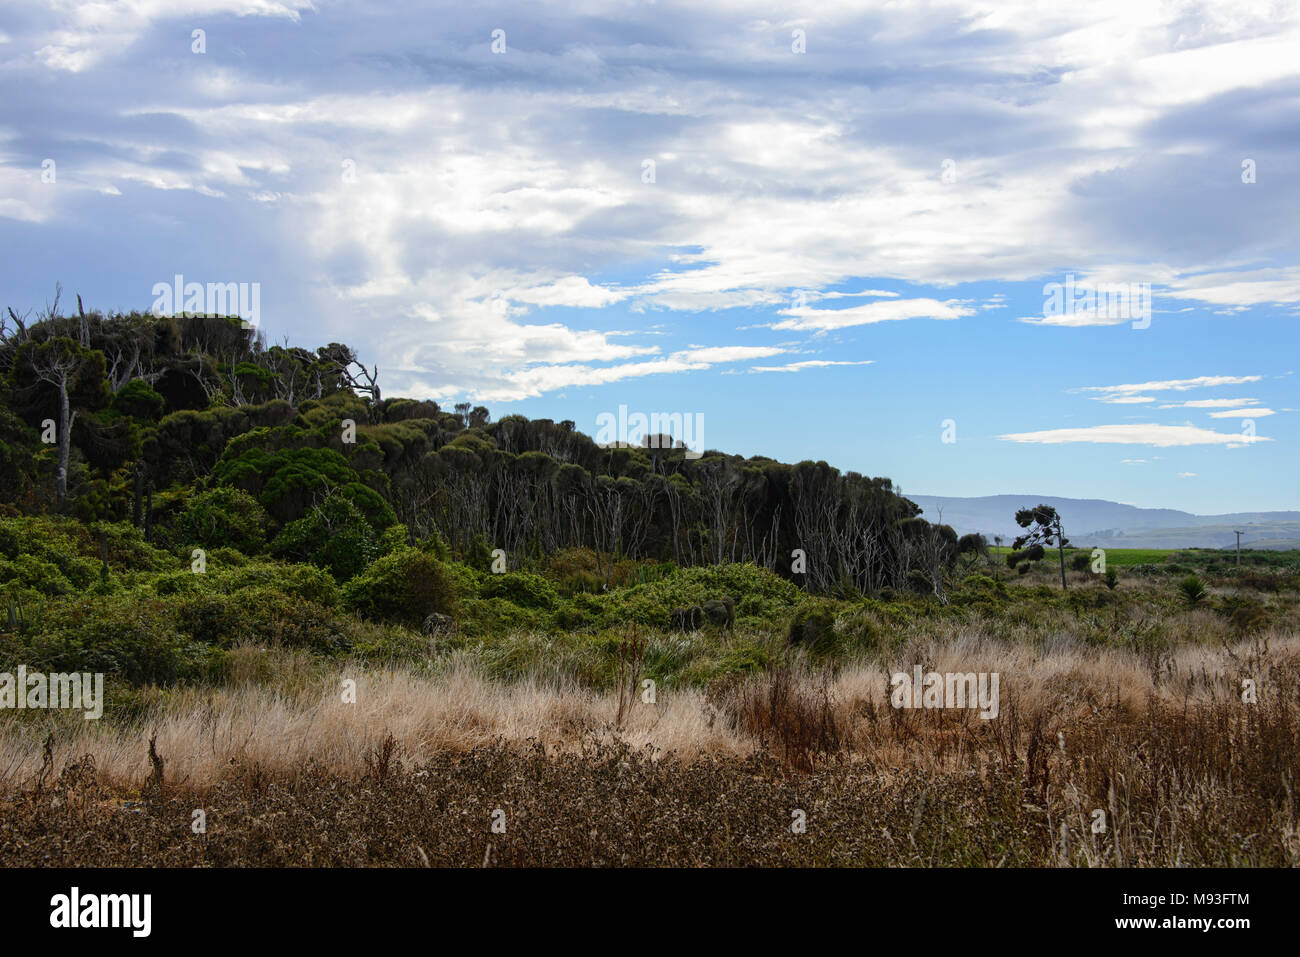 Windswept trees battered by Antarctic winds in the Roaring Forties, Slope Point, Catlins, New Zealand - Stock Image